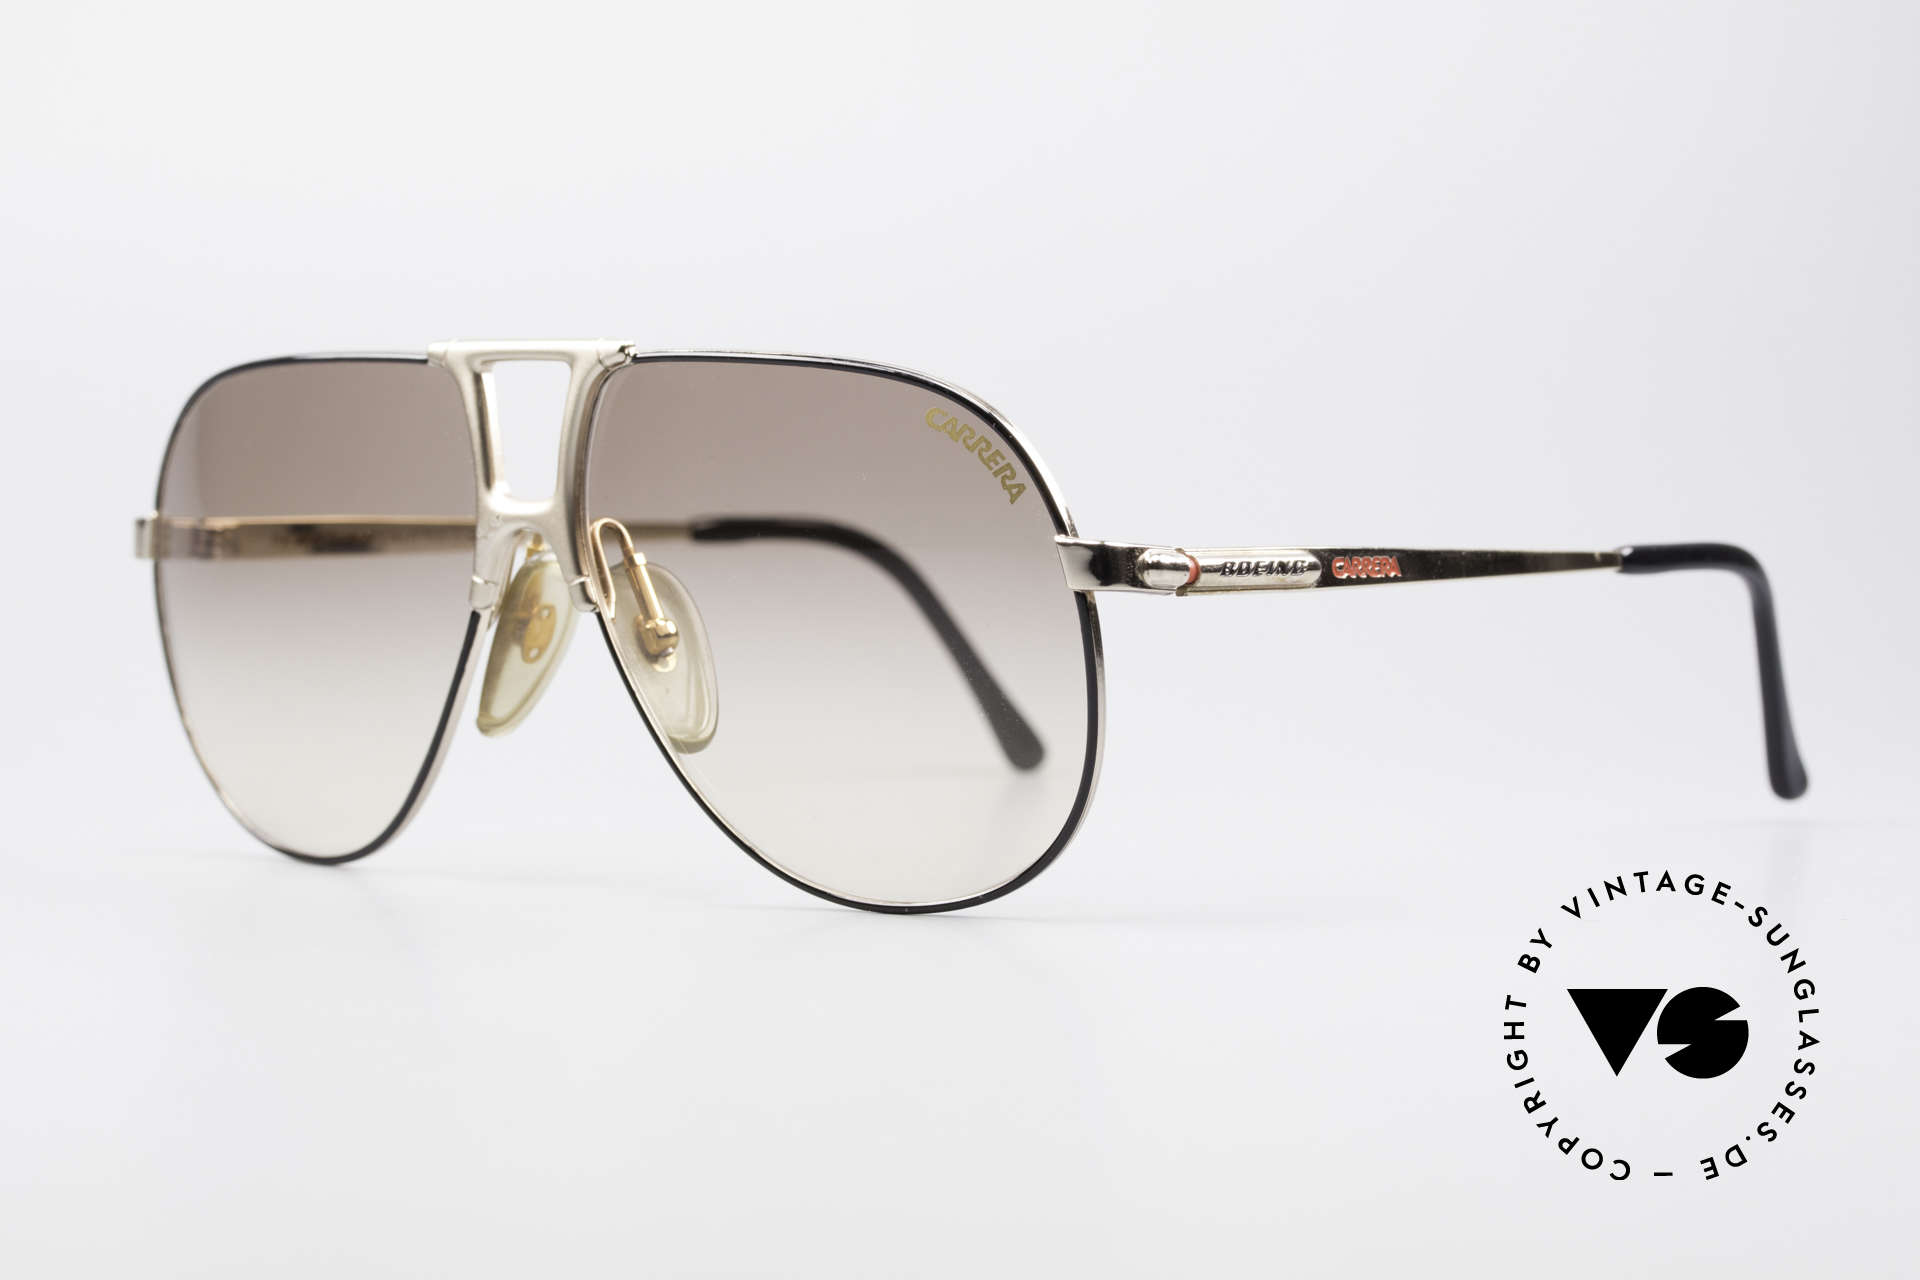 Boeing 5731 Small 80's Aviator Sunglasses, in the 80's, exclusively produced for the Boeing pilots, Made for Men and Women